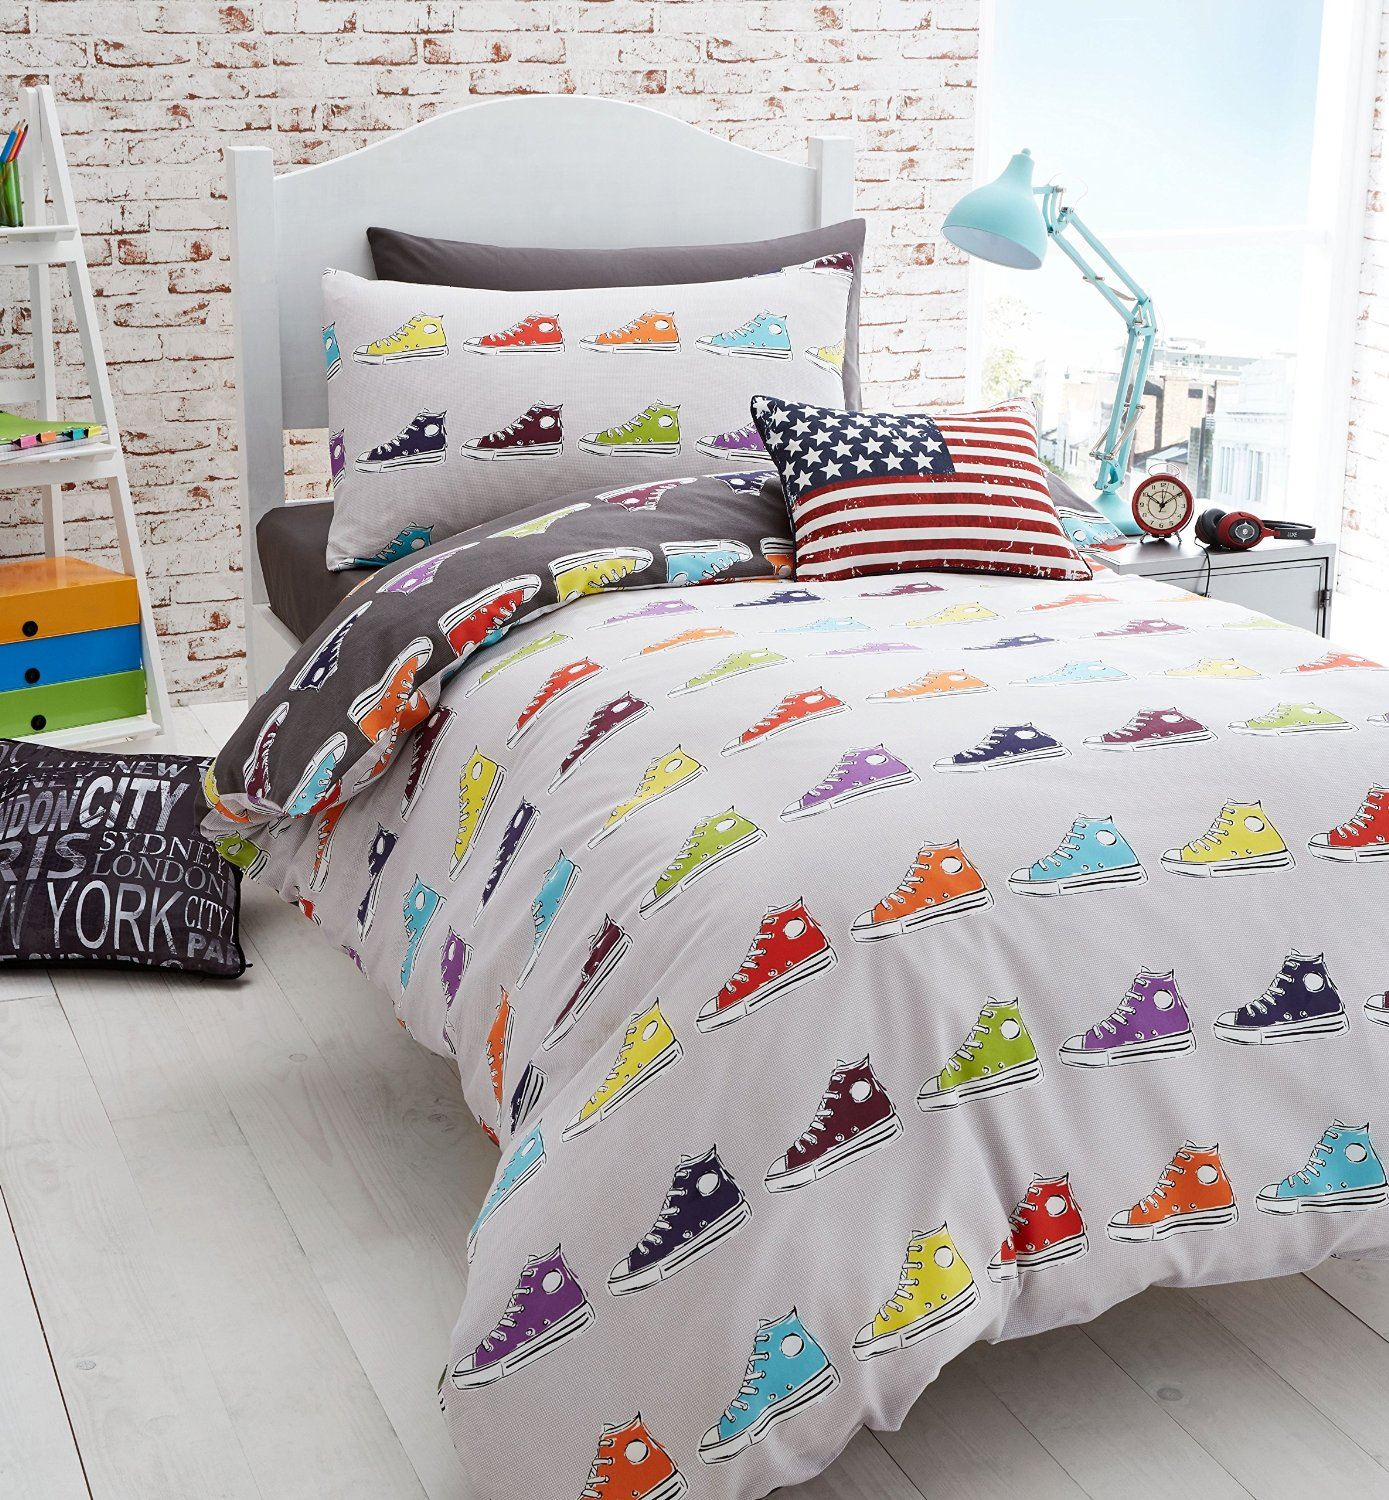 Bed cover in bedding ebay - Sneakers Shoes Bedding Trainers Duvet Cover Teenager Bedroom Funky Bright Design